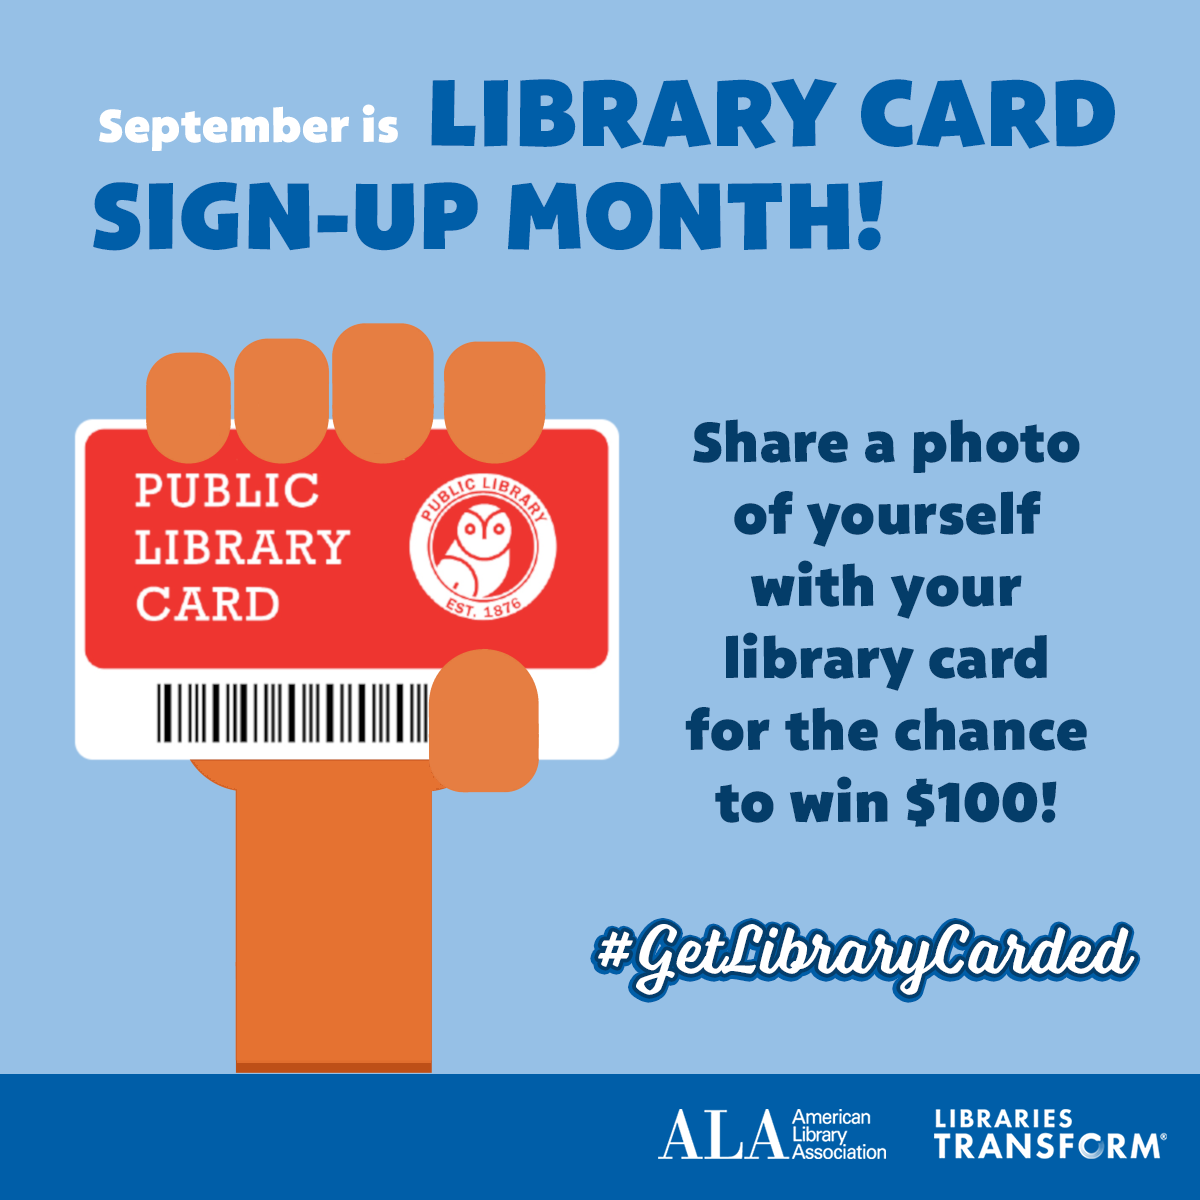 Share a photo of yourself with your library card for the chance to win $100. September is library card sign-up month. (cartoon hand holding library card)